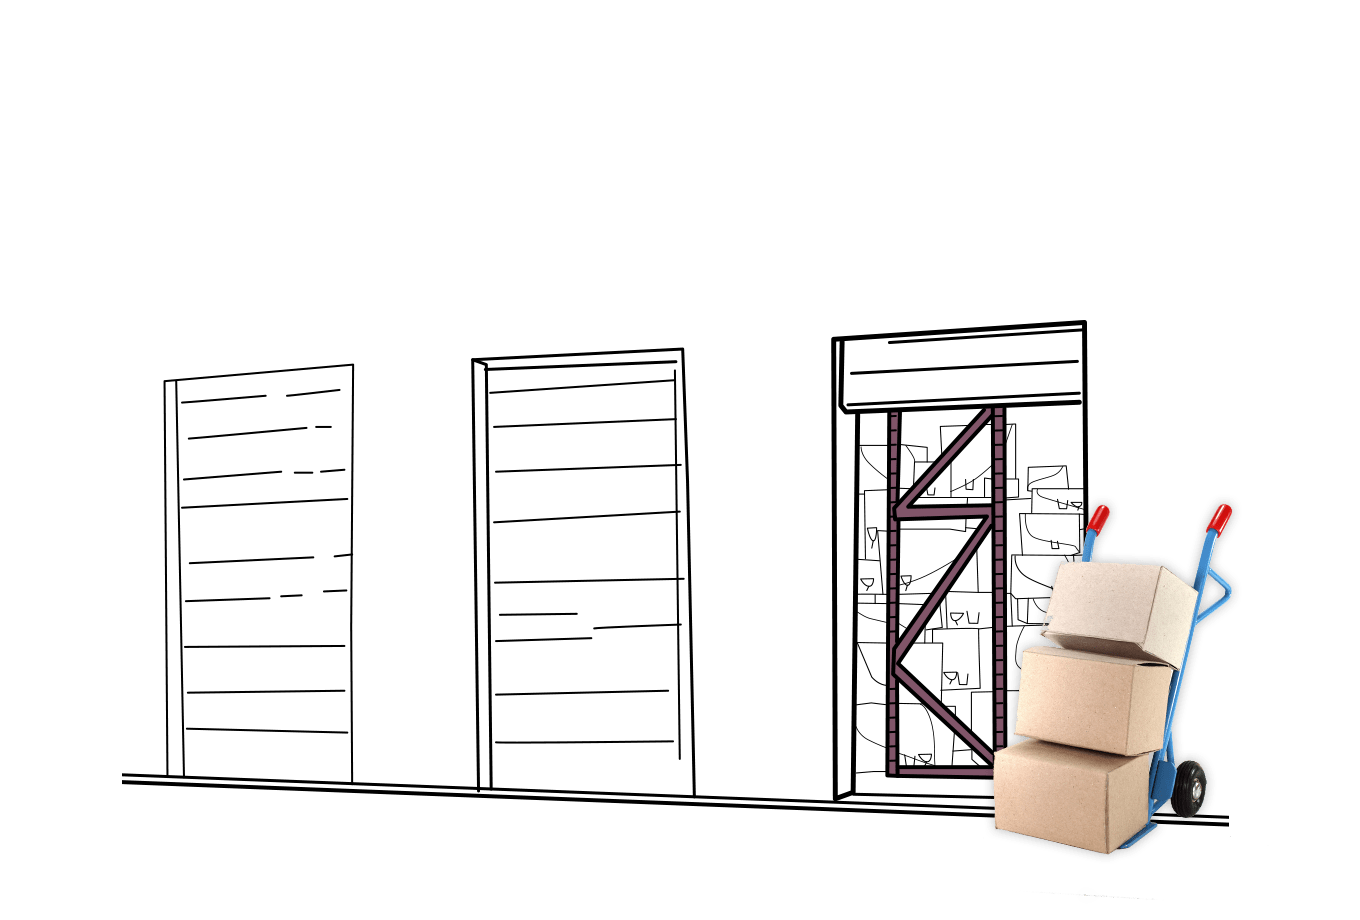 commercial landlord insurance illustration of storage unit